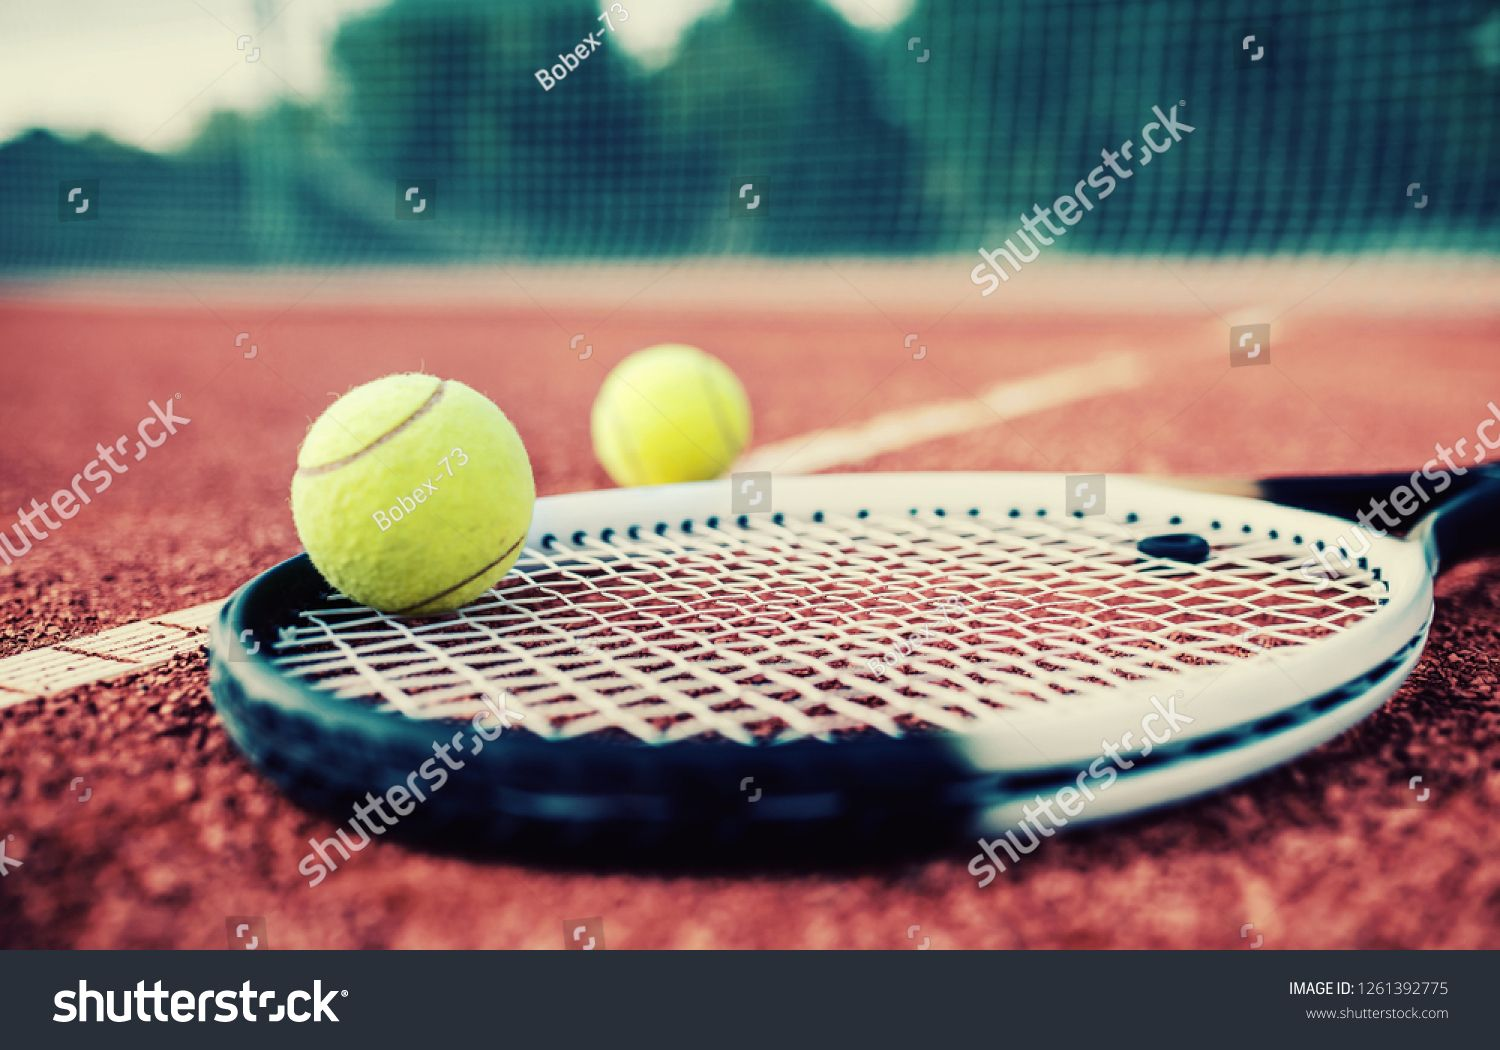 Tennis Game Tennis Ball With Racket On The Tennis Court Sport Recreation Concept Ad Ad Ball Racket Tennis Game Tennis Games Tennis Tennis Posters